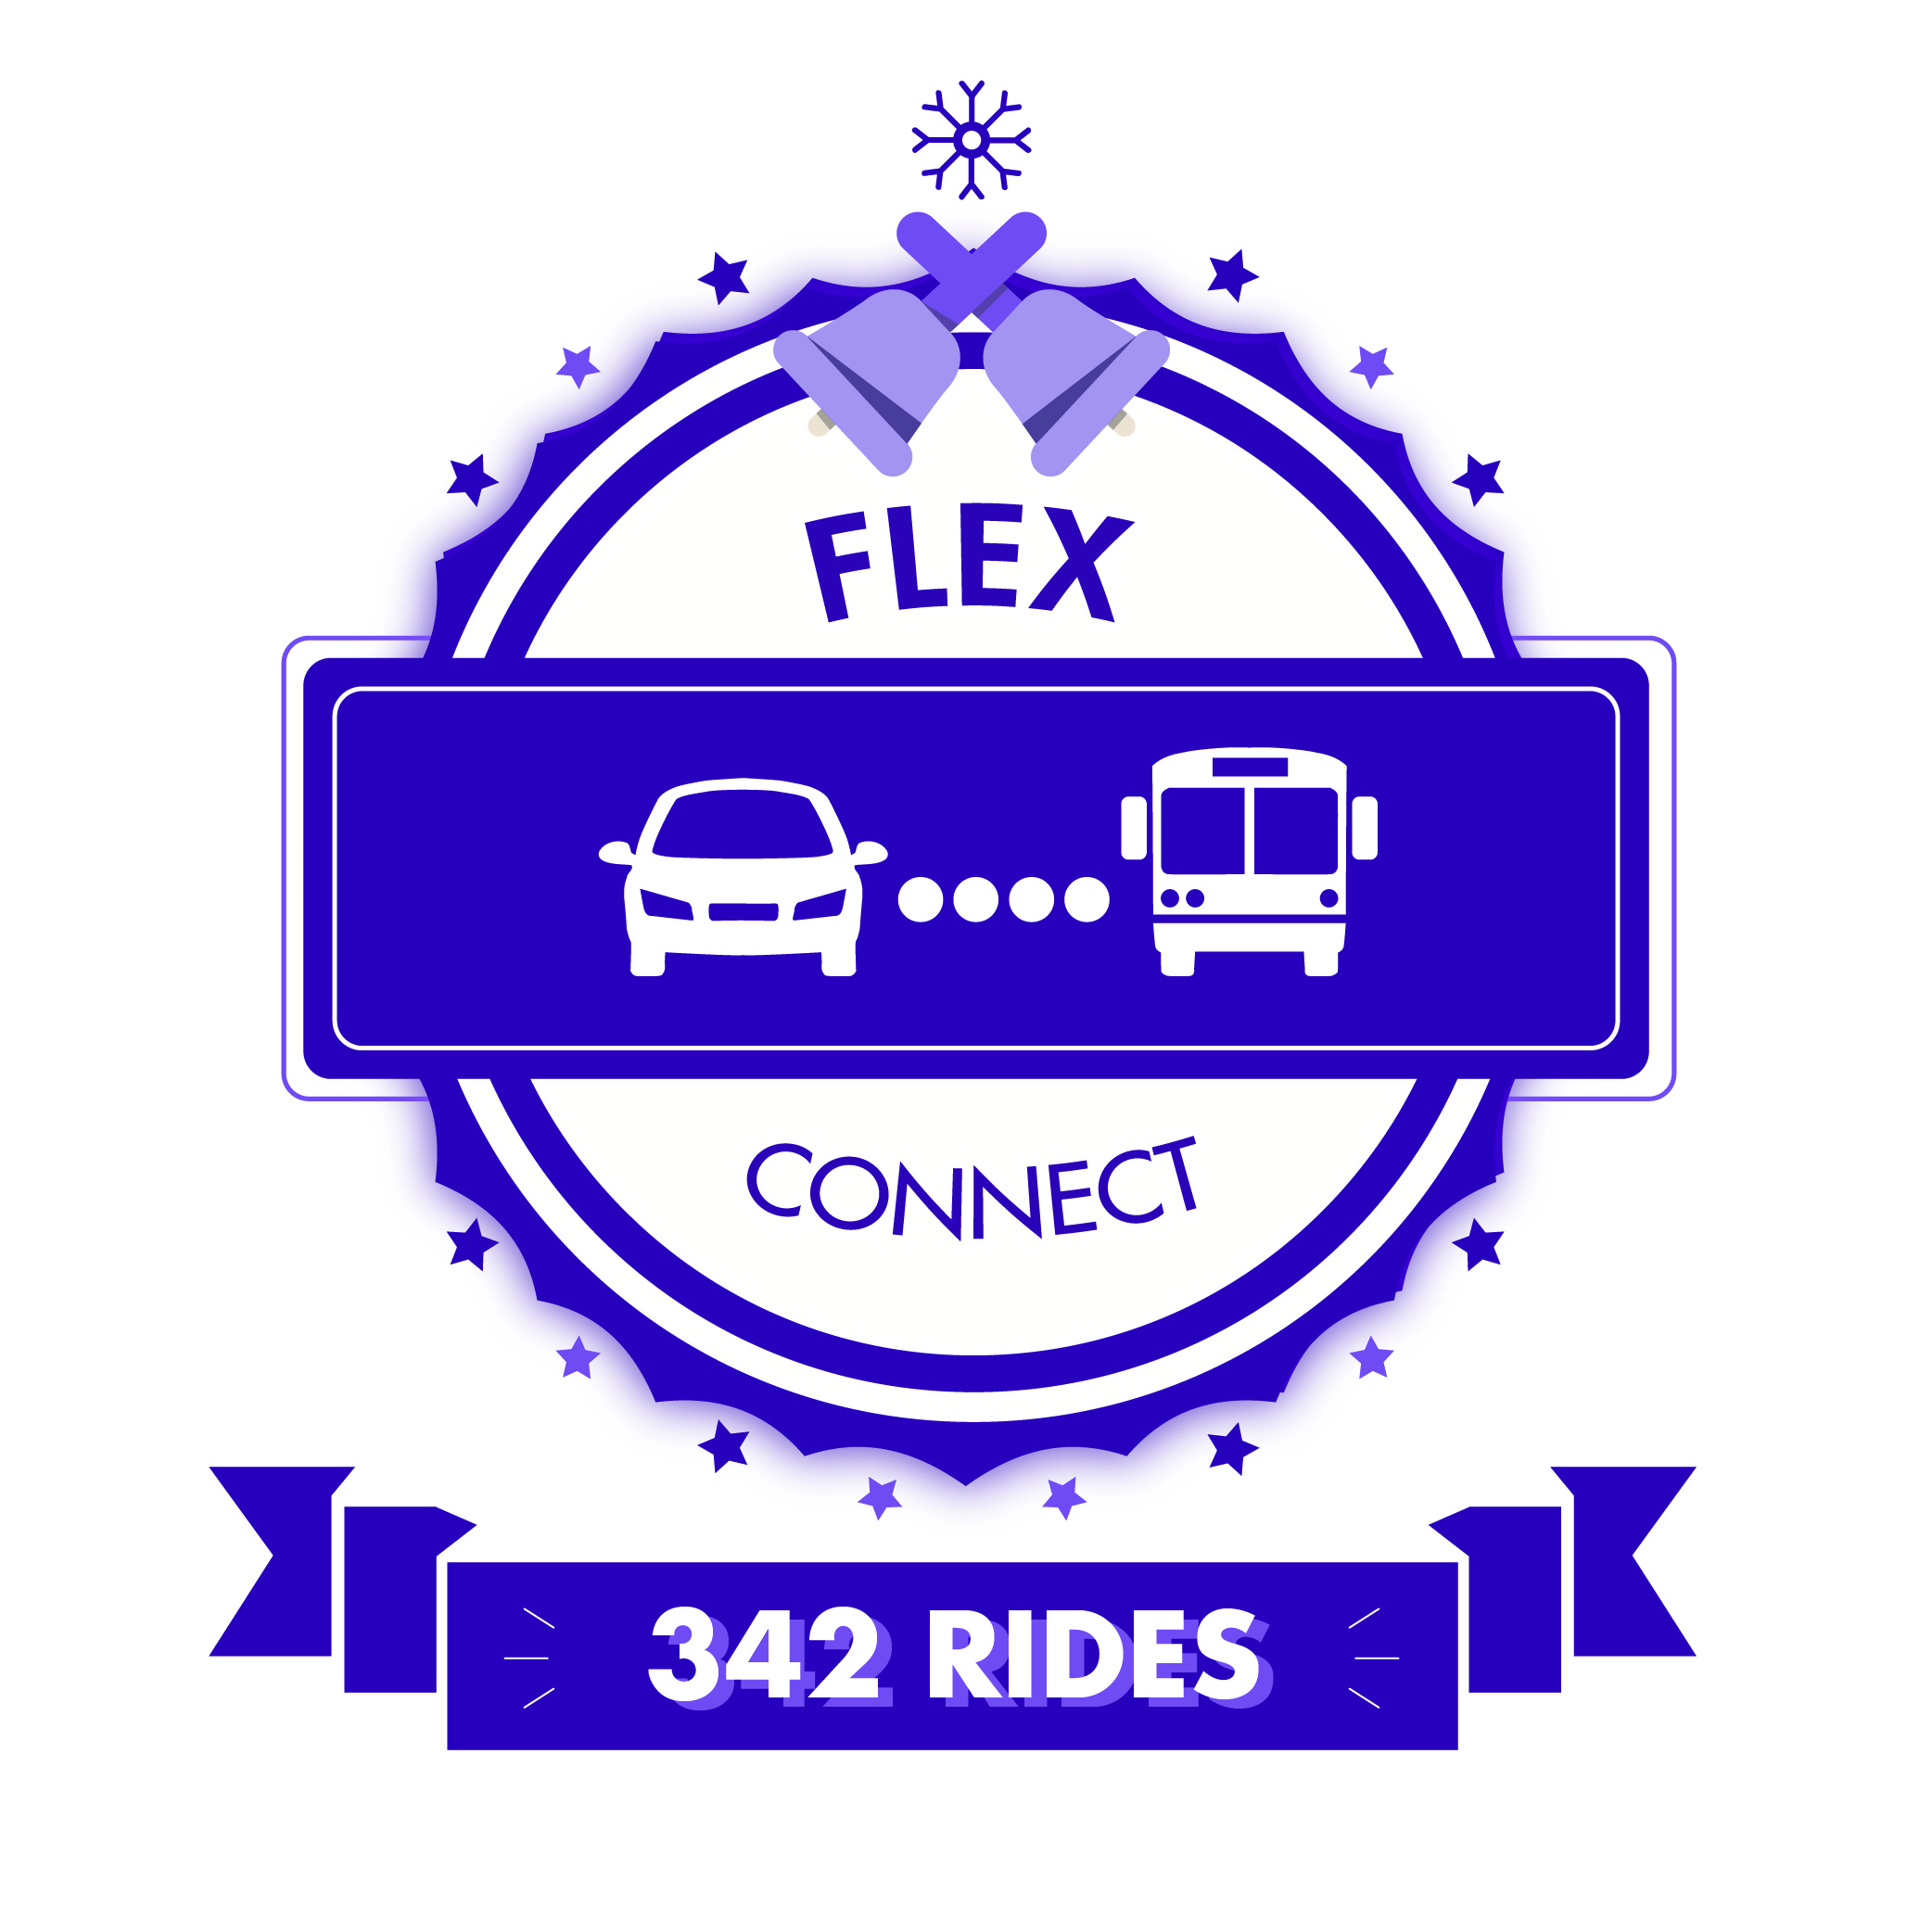 Flex connect rides taken in Oct. and Nov. 2019.